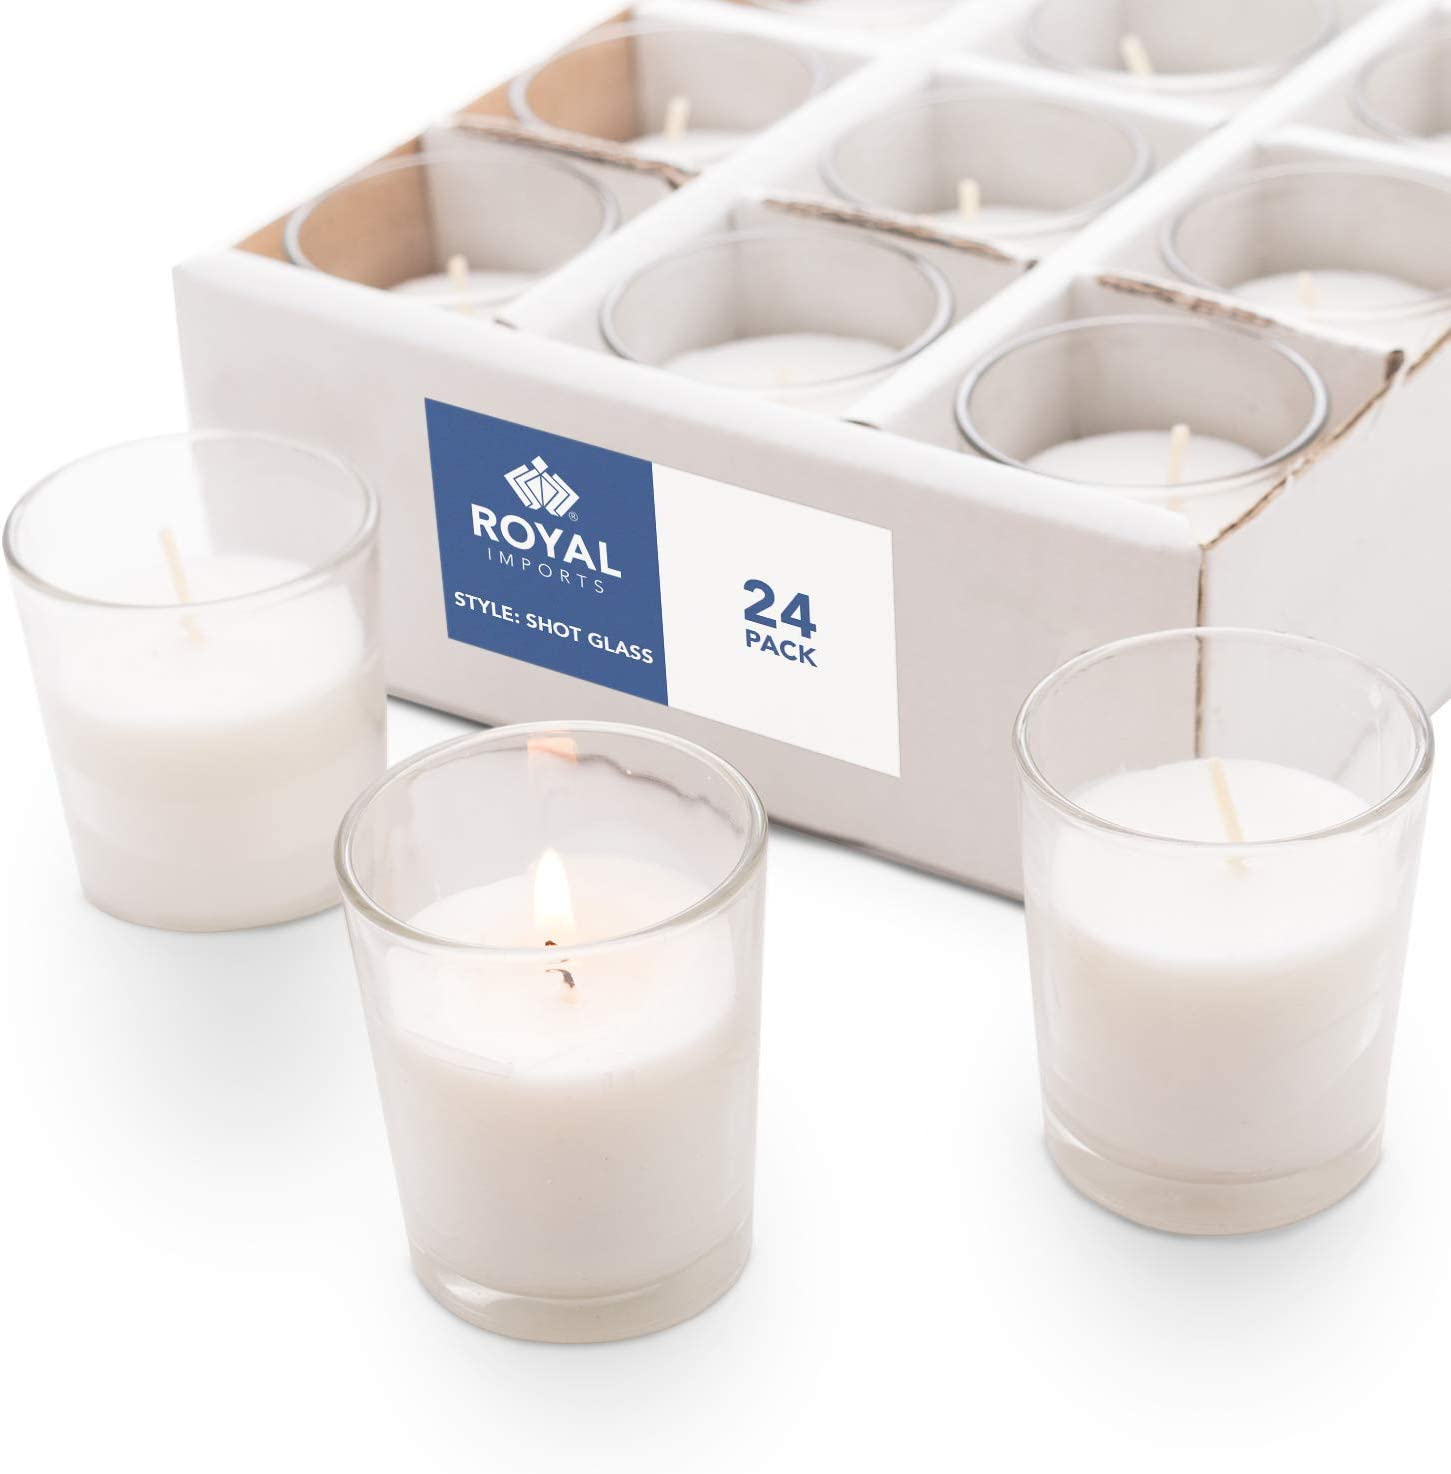 Royal Imports Candle Holder Glass Votive for Wedding, Birthday, Holiday & Home Decoration, Shot Glass, Set of 24 - Wax Filled